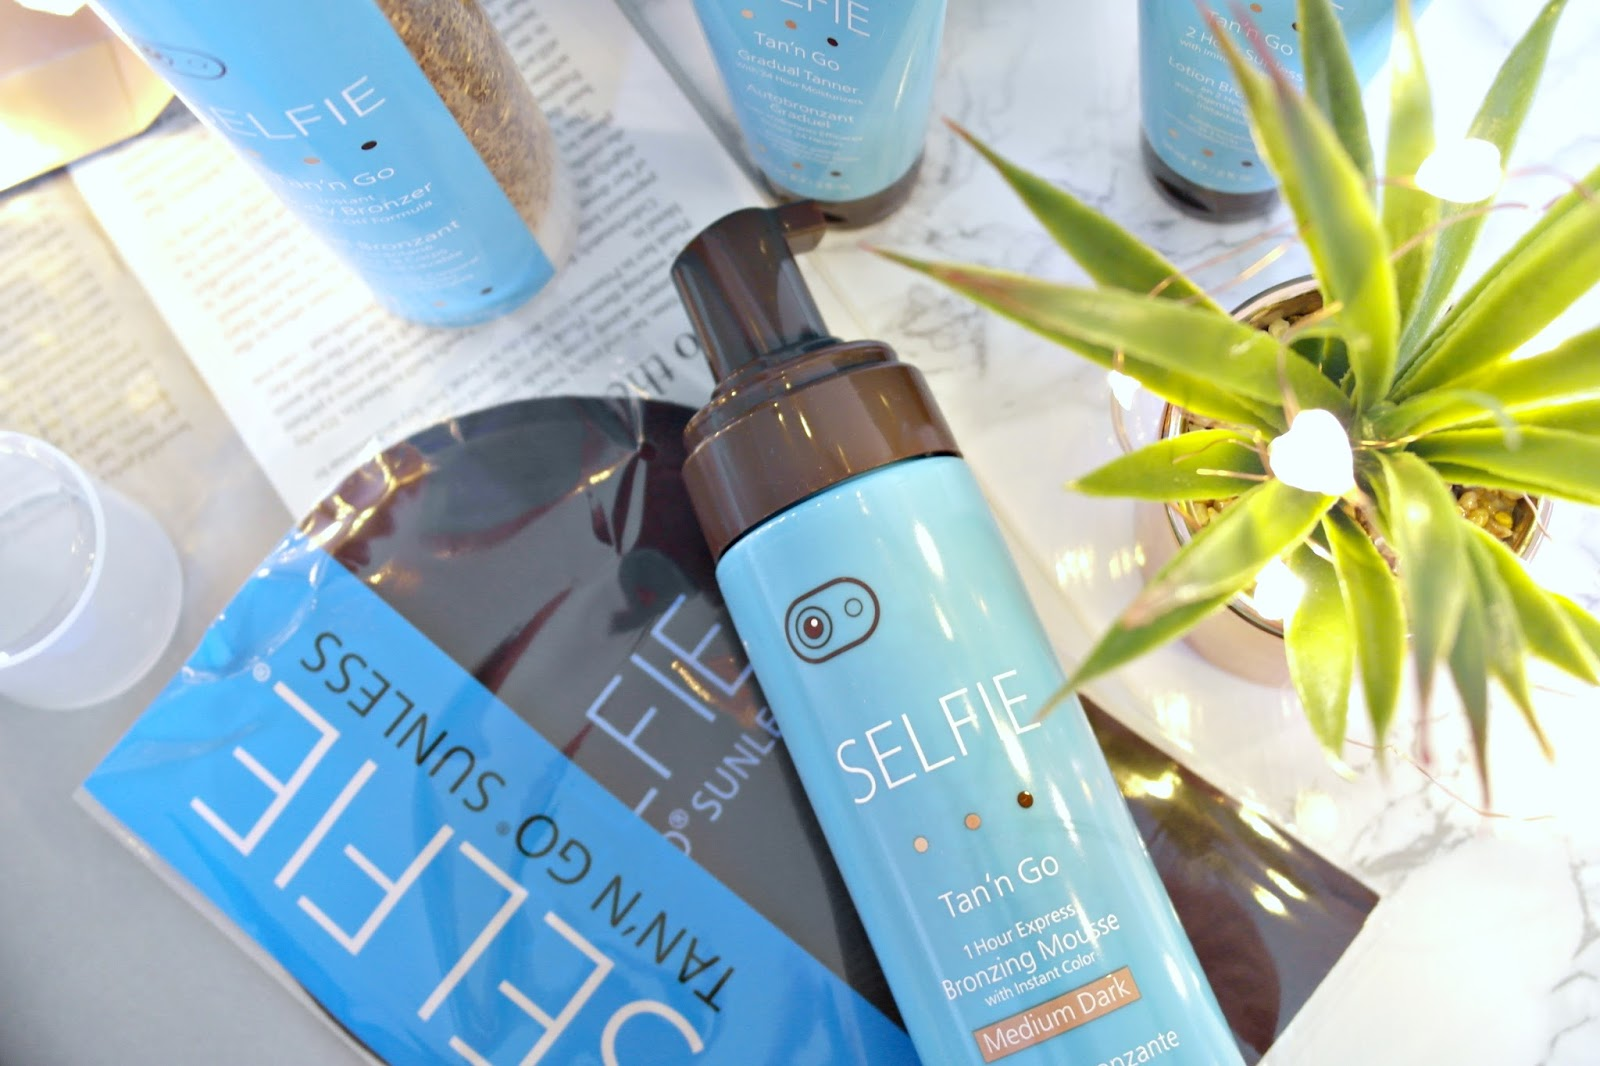 Selfie fake tan 1 hour express mousse review